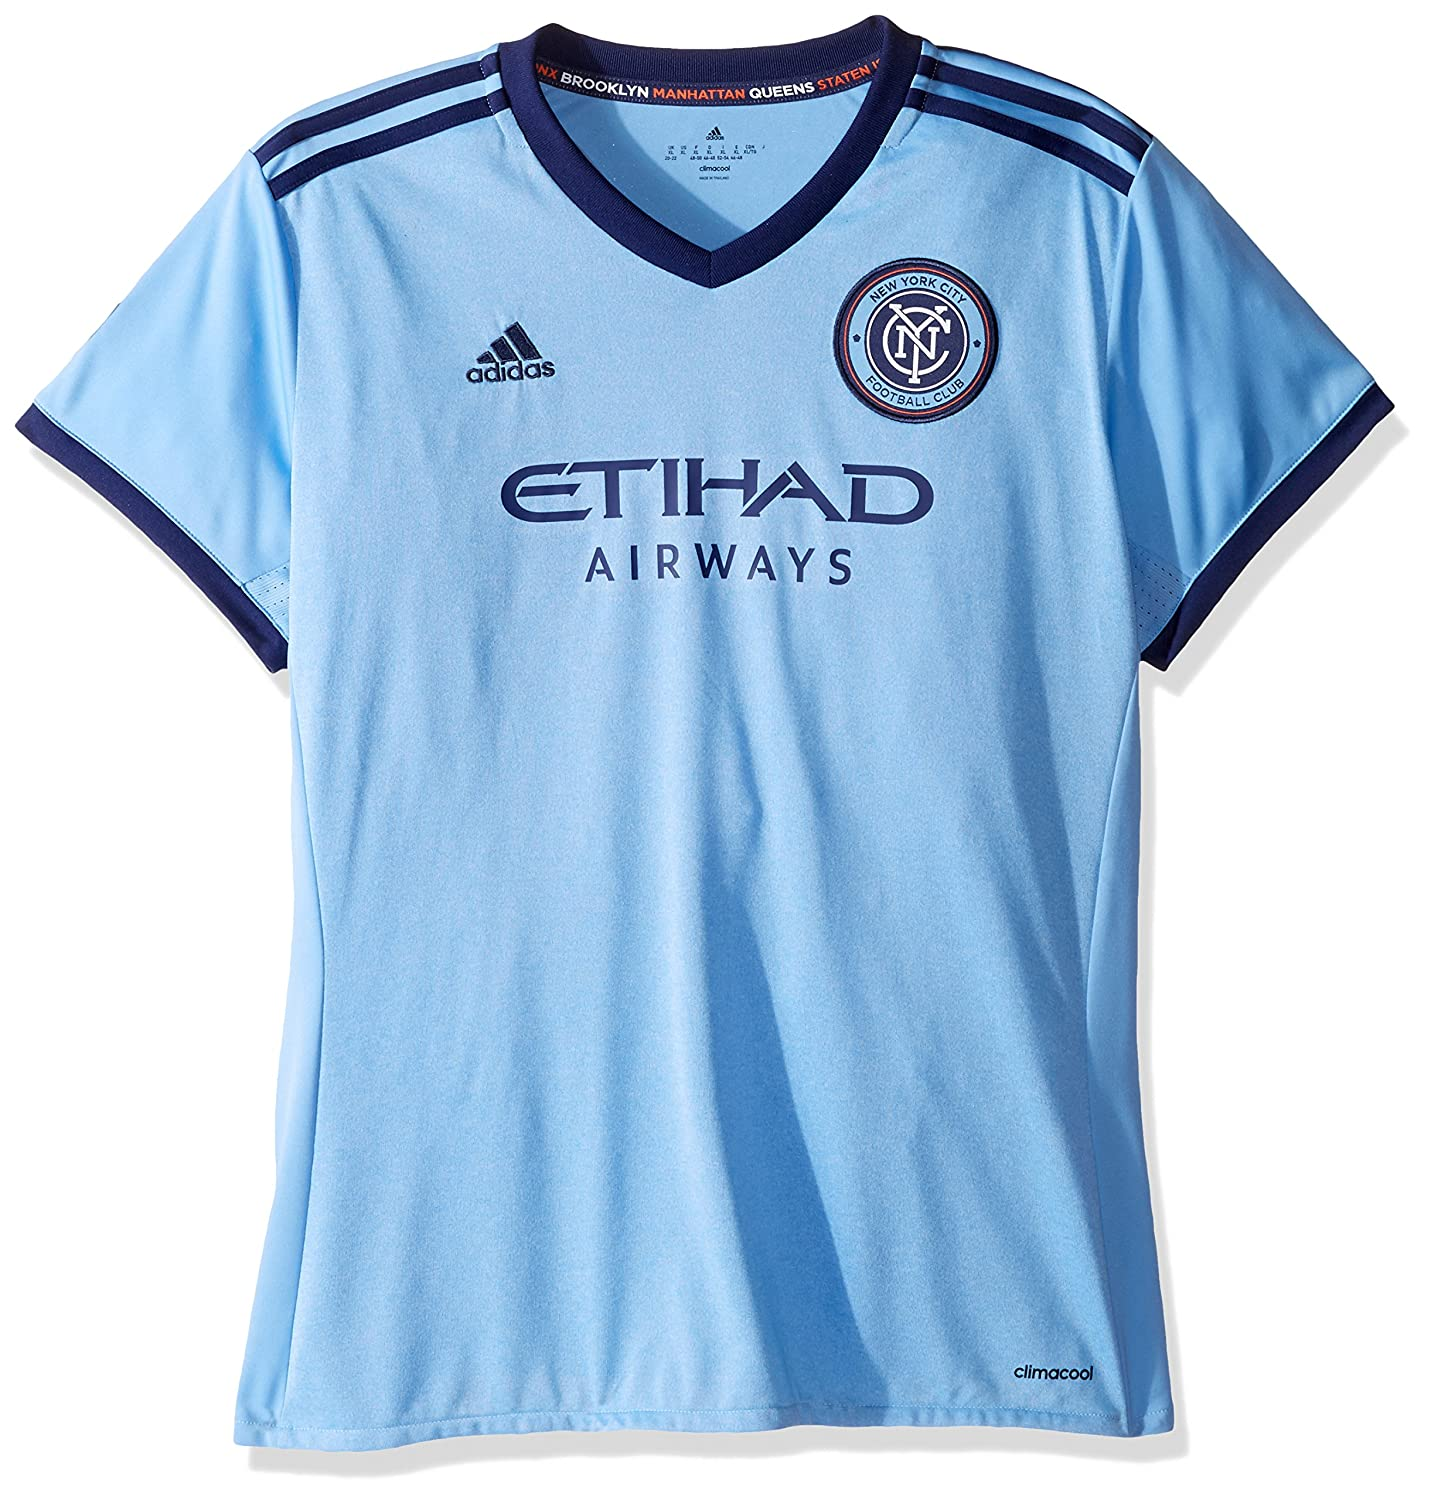 finest selection 44f40 25c80 adidas New York City FC Women's Jersey Home Replica Soccer Jersey